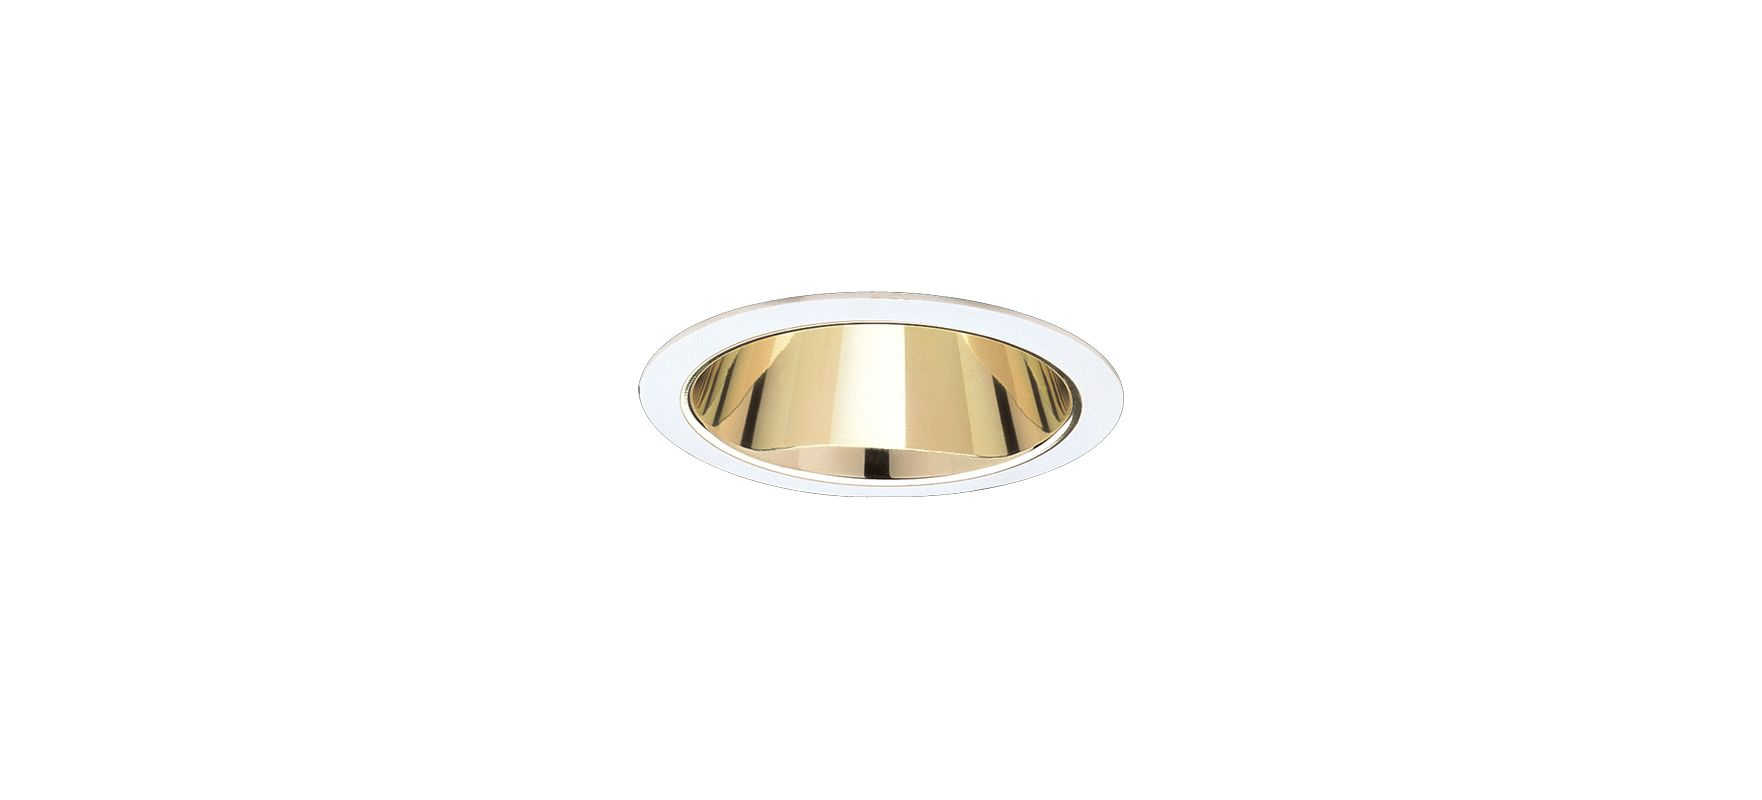 "Elco EL741 7"" CFL Reflector Gold / White Recessed Lights Reflector"